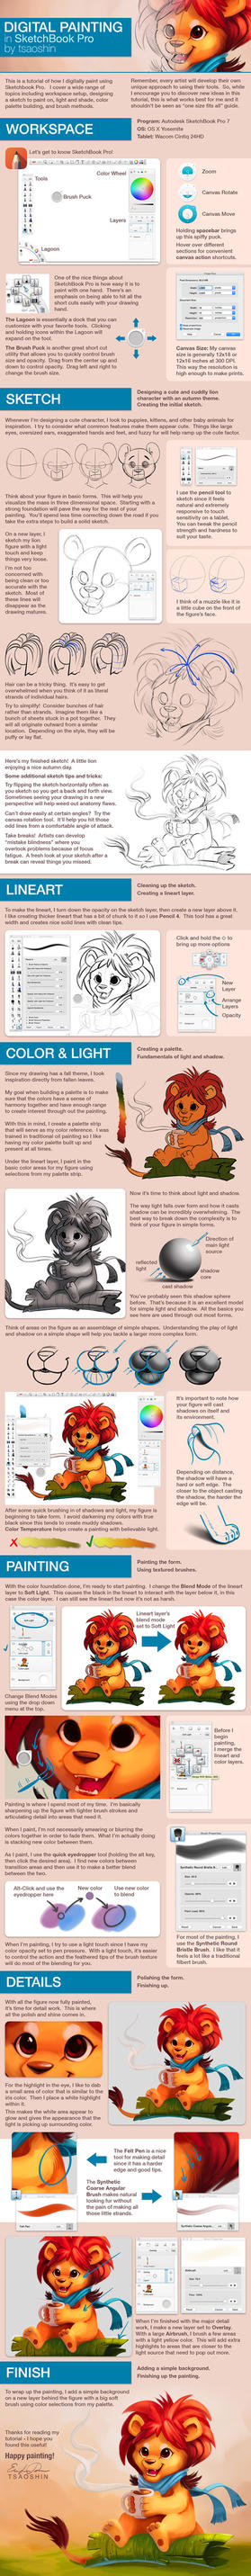 Tutorial - Digital Painting a Cute Lion by TsaoShin